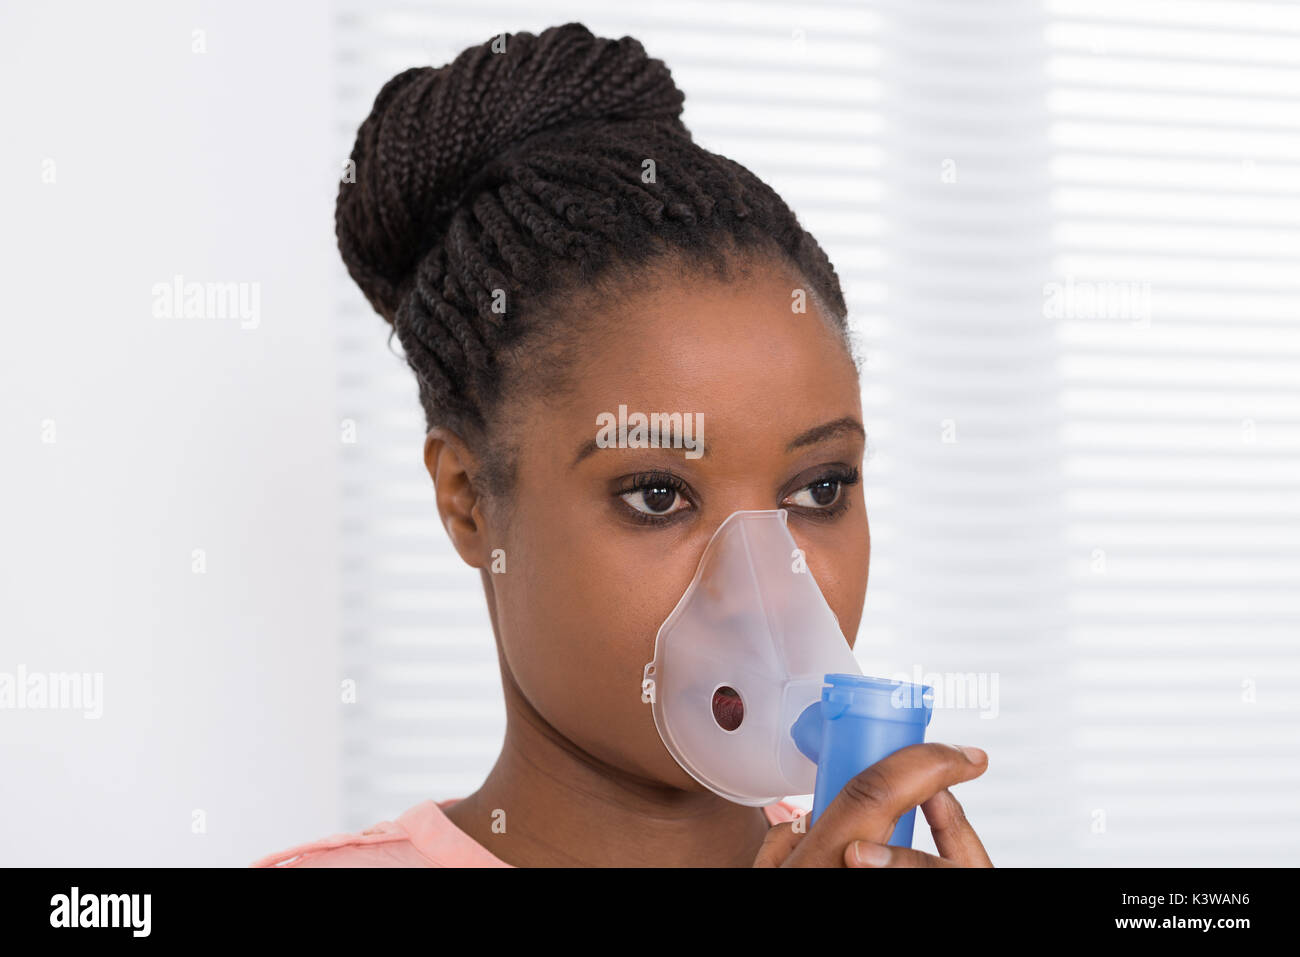 Close-up Of Young African Woman Using Oxygen Mask - Stock Image  sc 1 st  Alamy & Oxygen Mask Woman Stock Photos u0026 Oxygen Mask Woman Stock Images ...